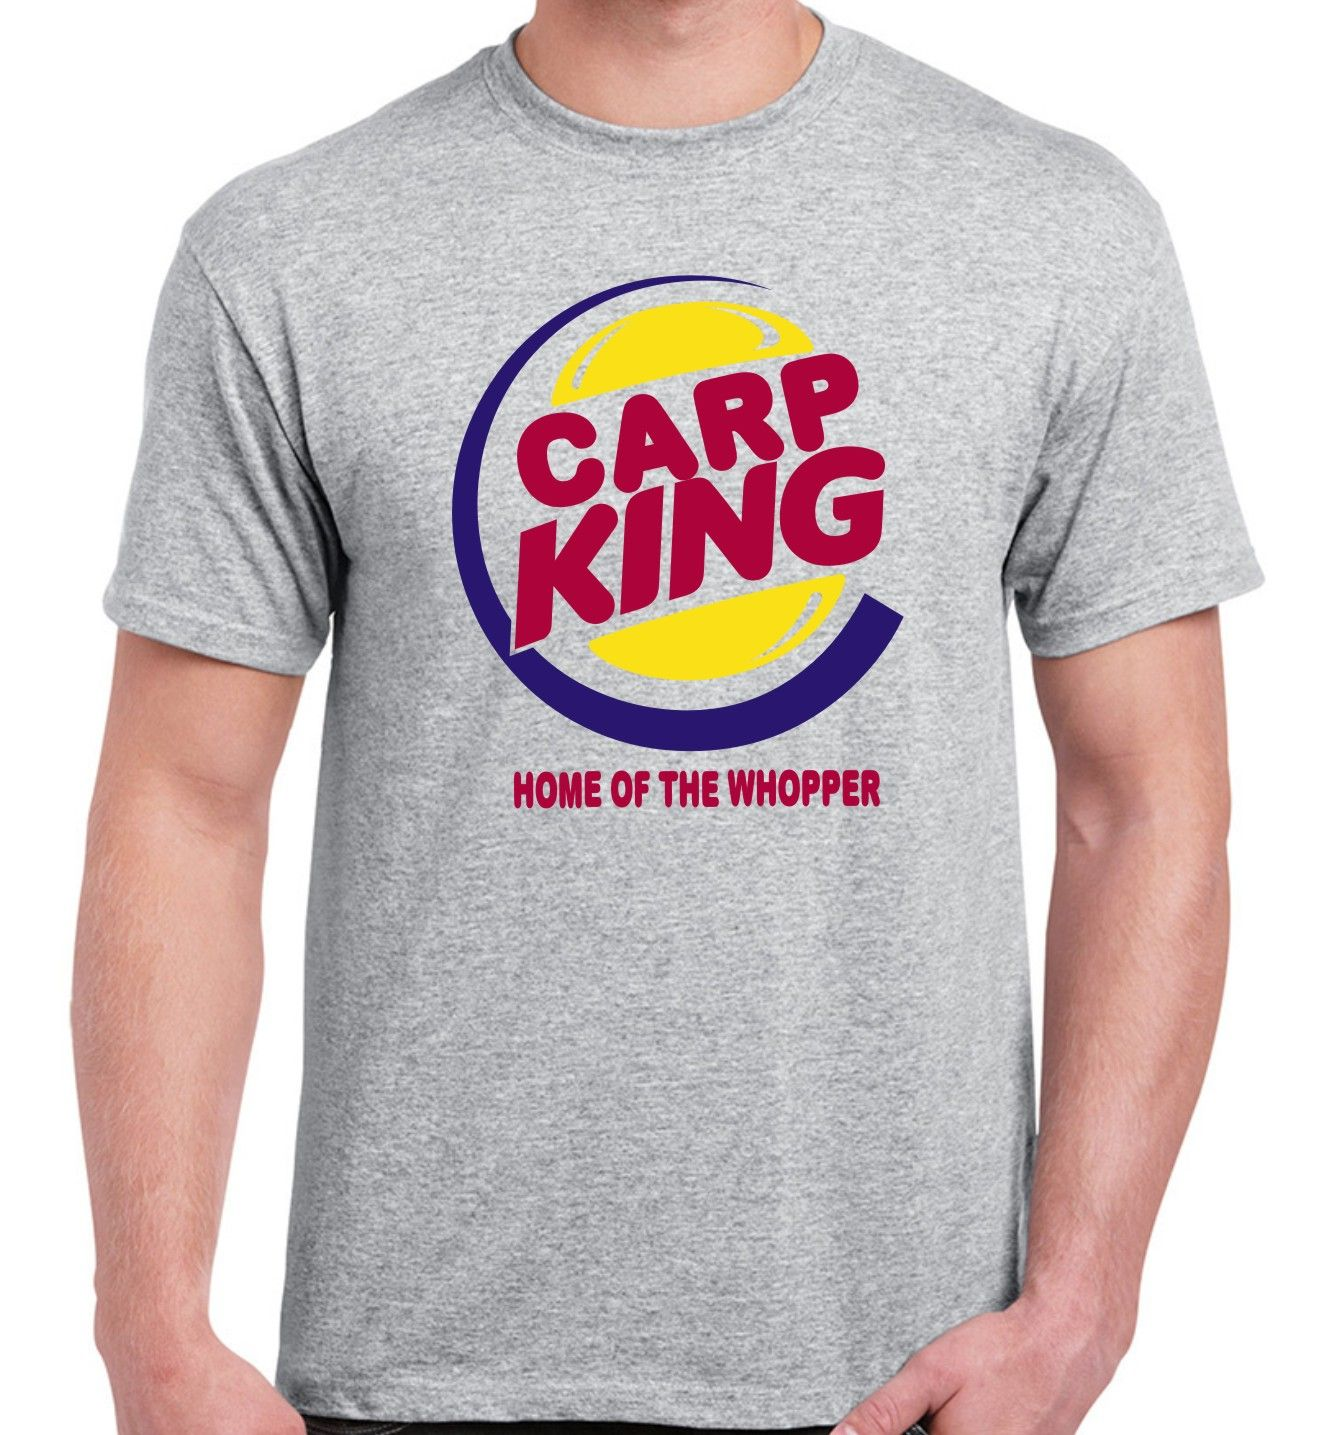 b5e9b84e Carp king fishing T-shirt | Fishing T-shirts | Fishing t shirts ...